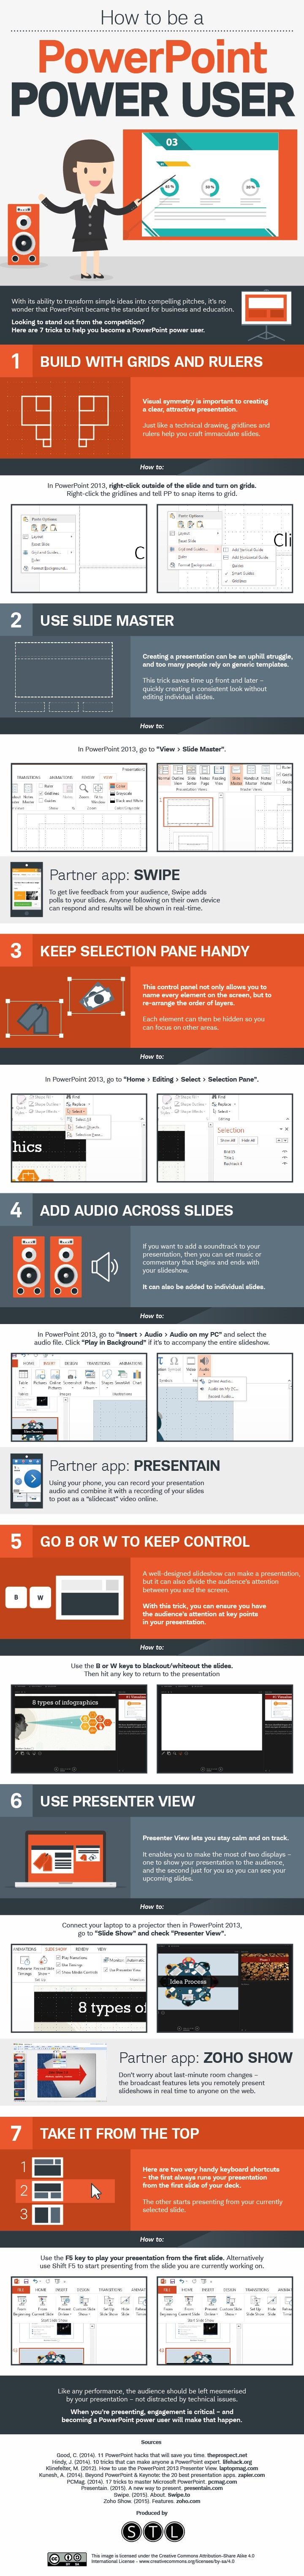 7 #PowerPoint Tricks To Help You Become A Power User - #infographic